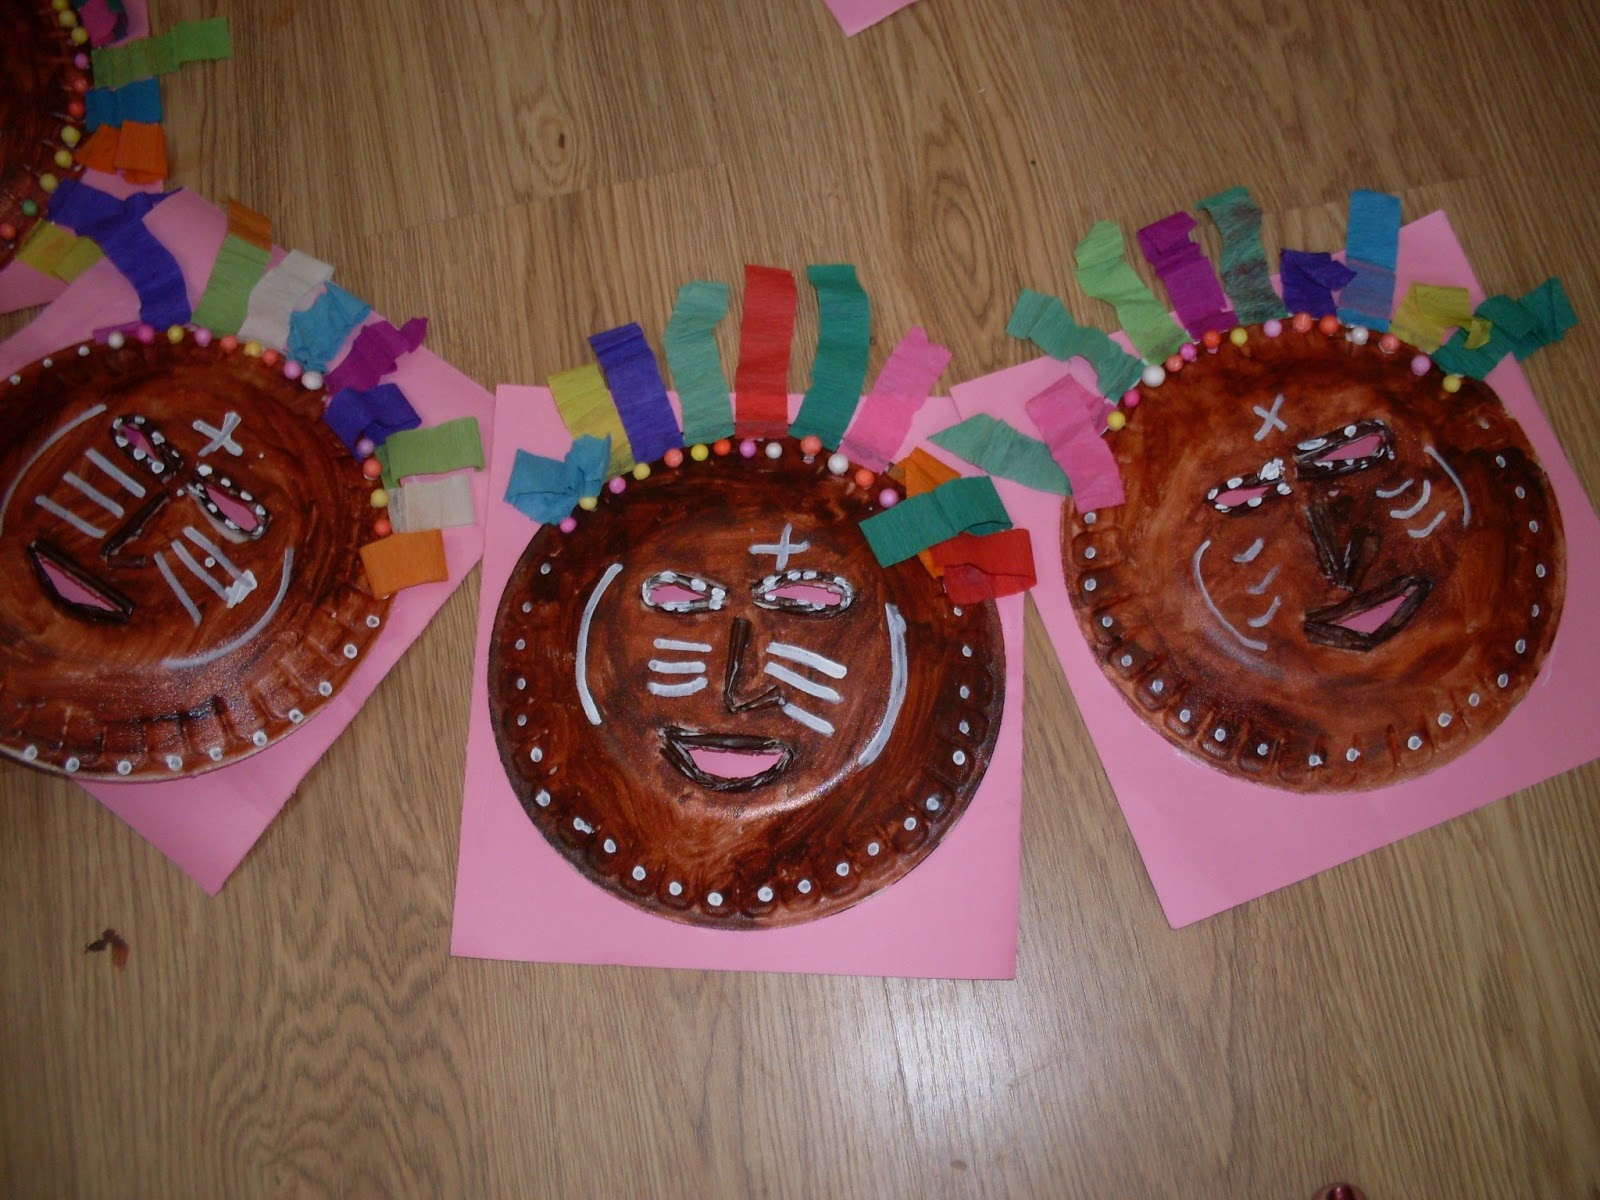 Tribal Face Wall Hanging & Roohi\u0027s Collections: Paper Plate Craft - Tribal Face Wall hanging